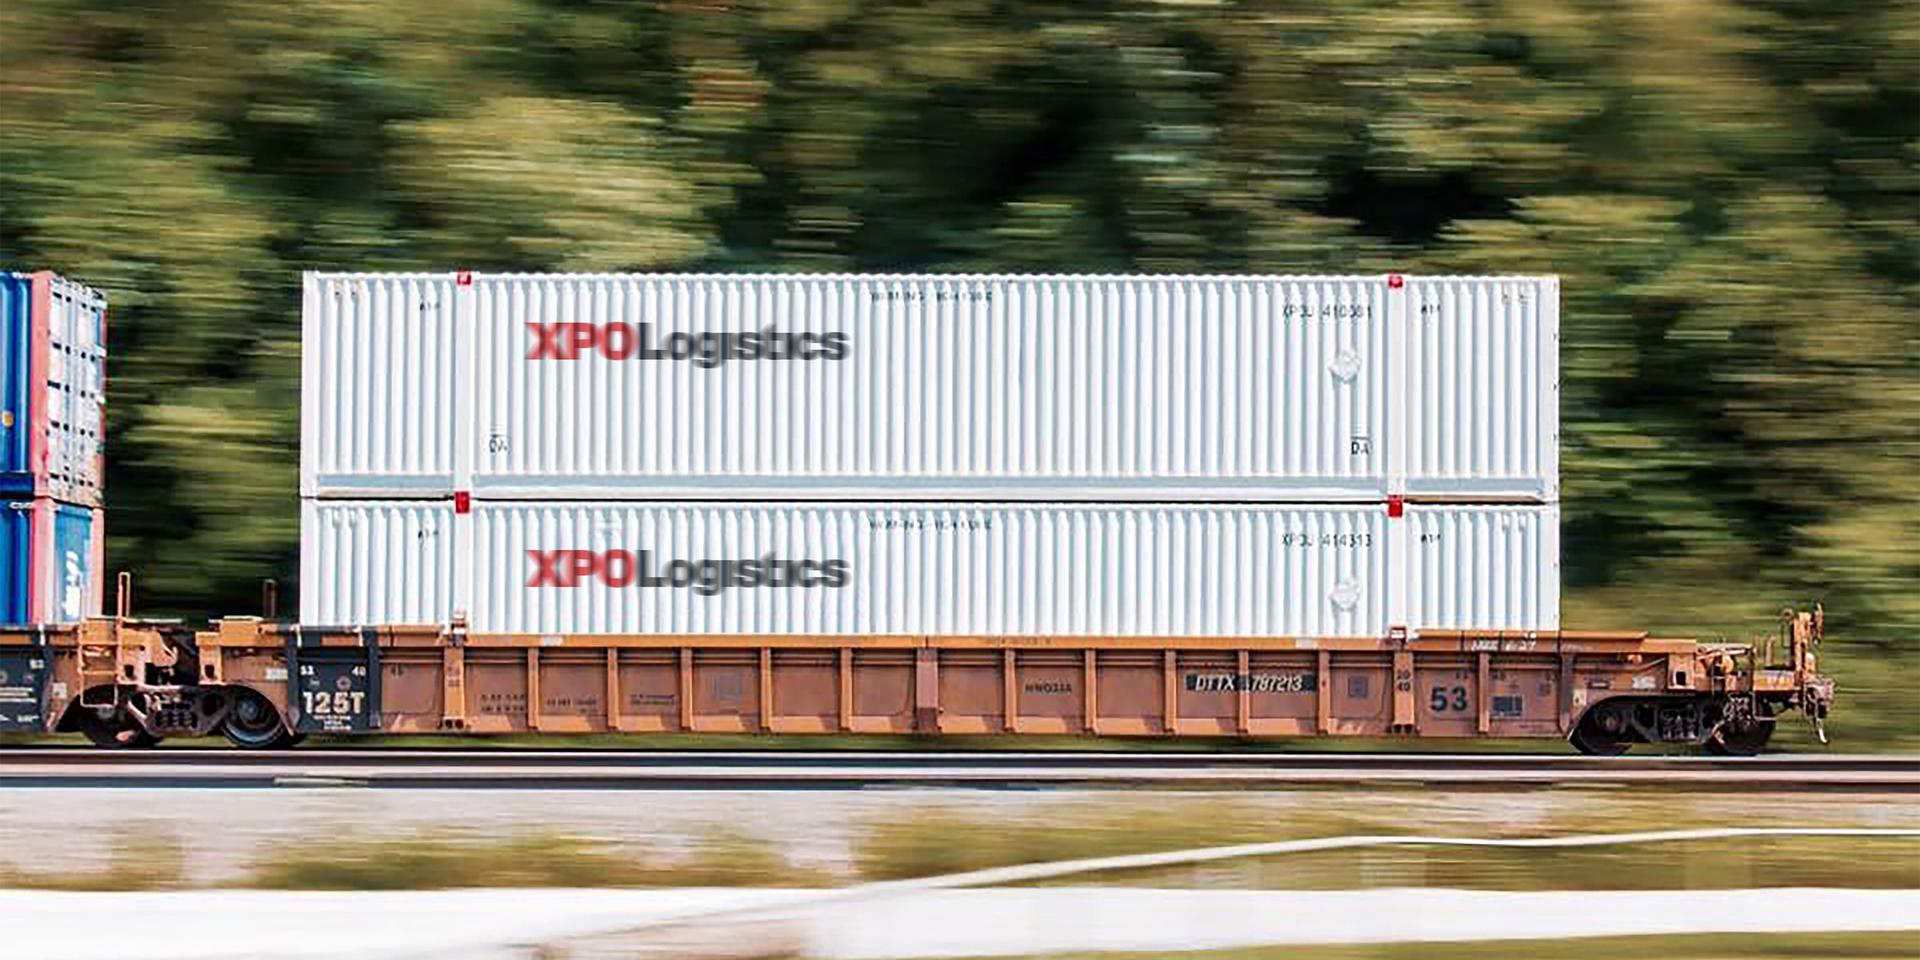 XPO containers moving on rail